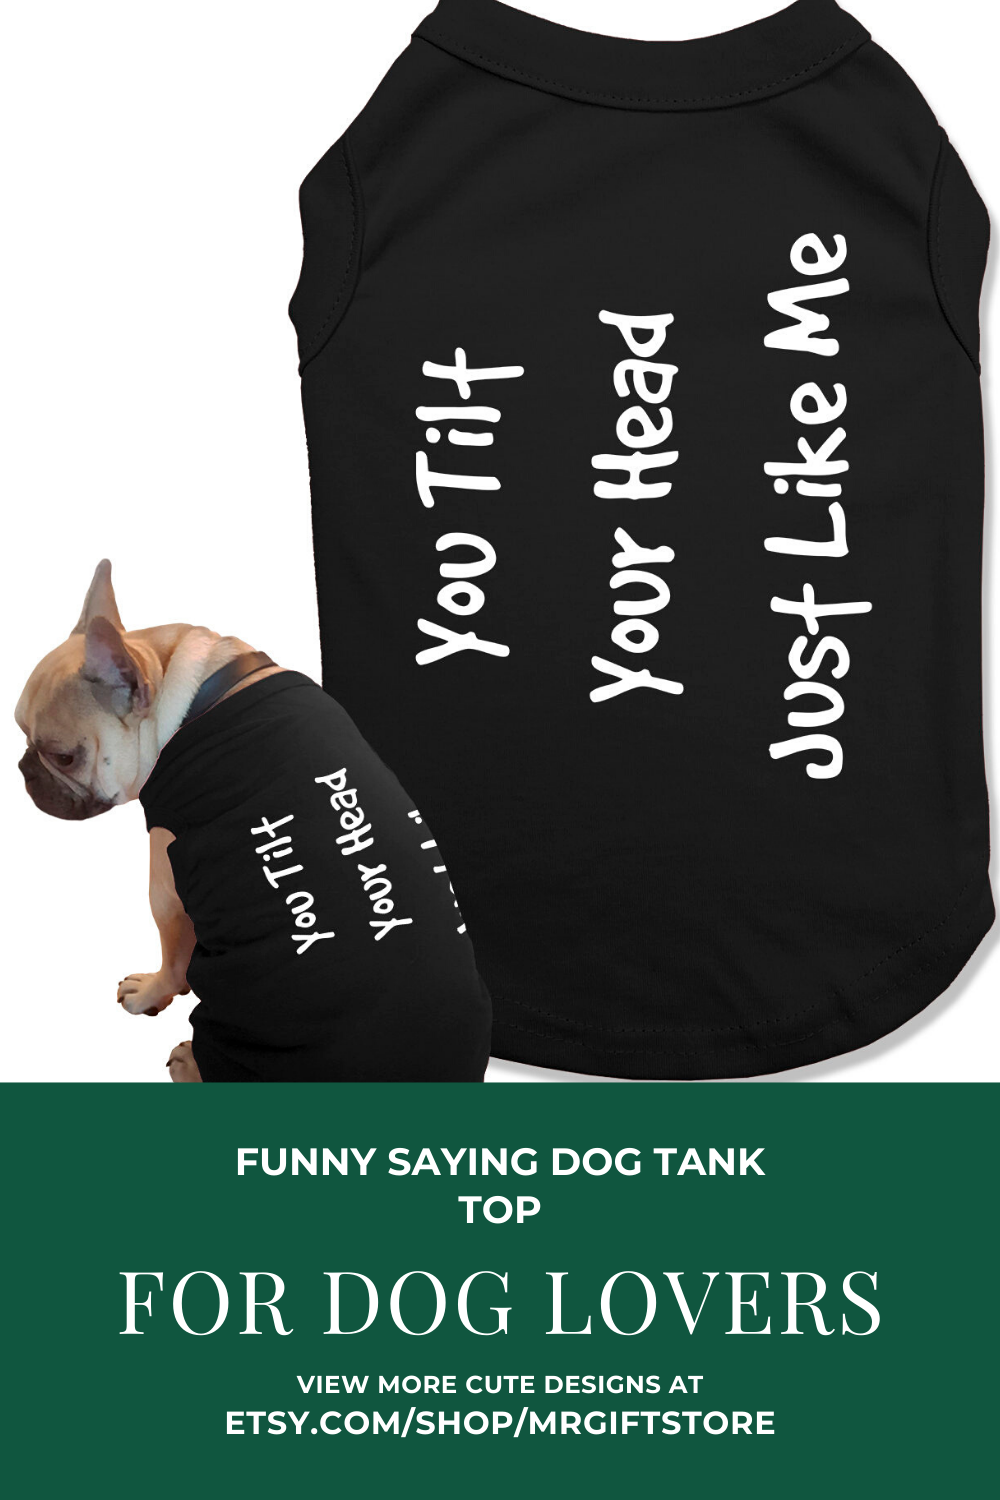 Funny Saying Dog Tank Top You Tilt Your Head Just Like Me Gift Idea For Dog Lovers Dog Clothes Funny Dog Clothes Cute Dog Clothes